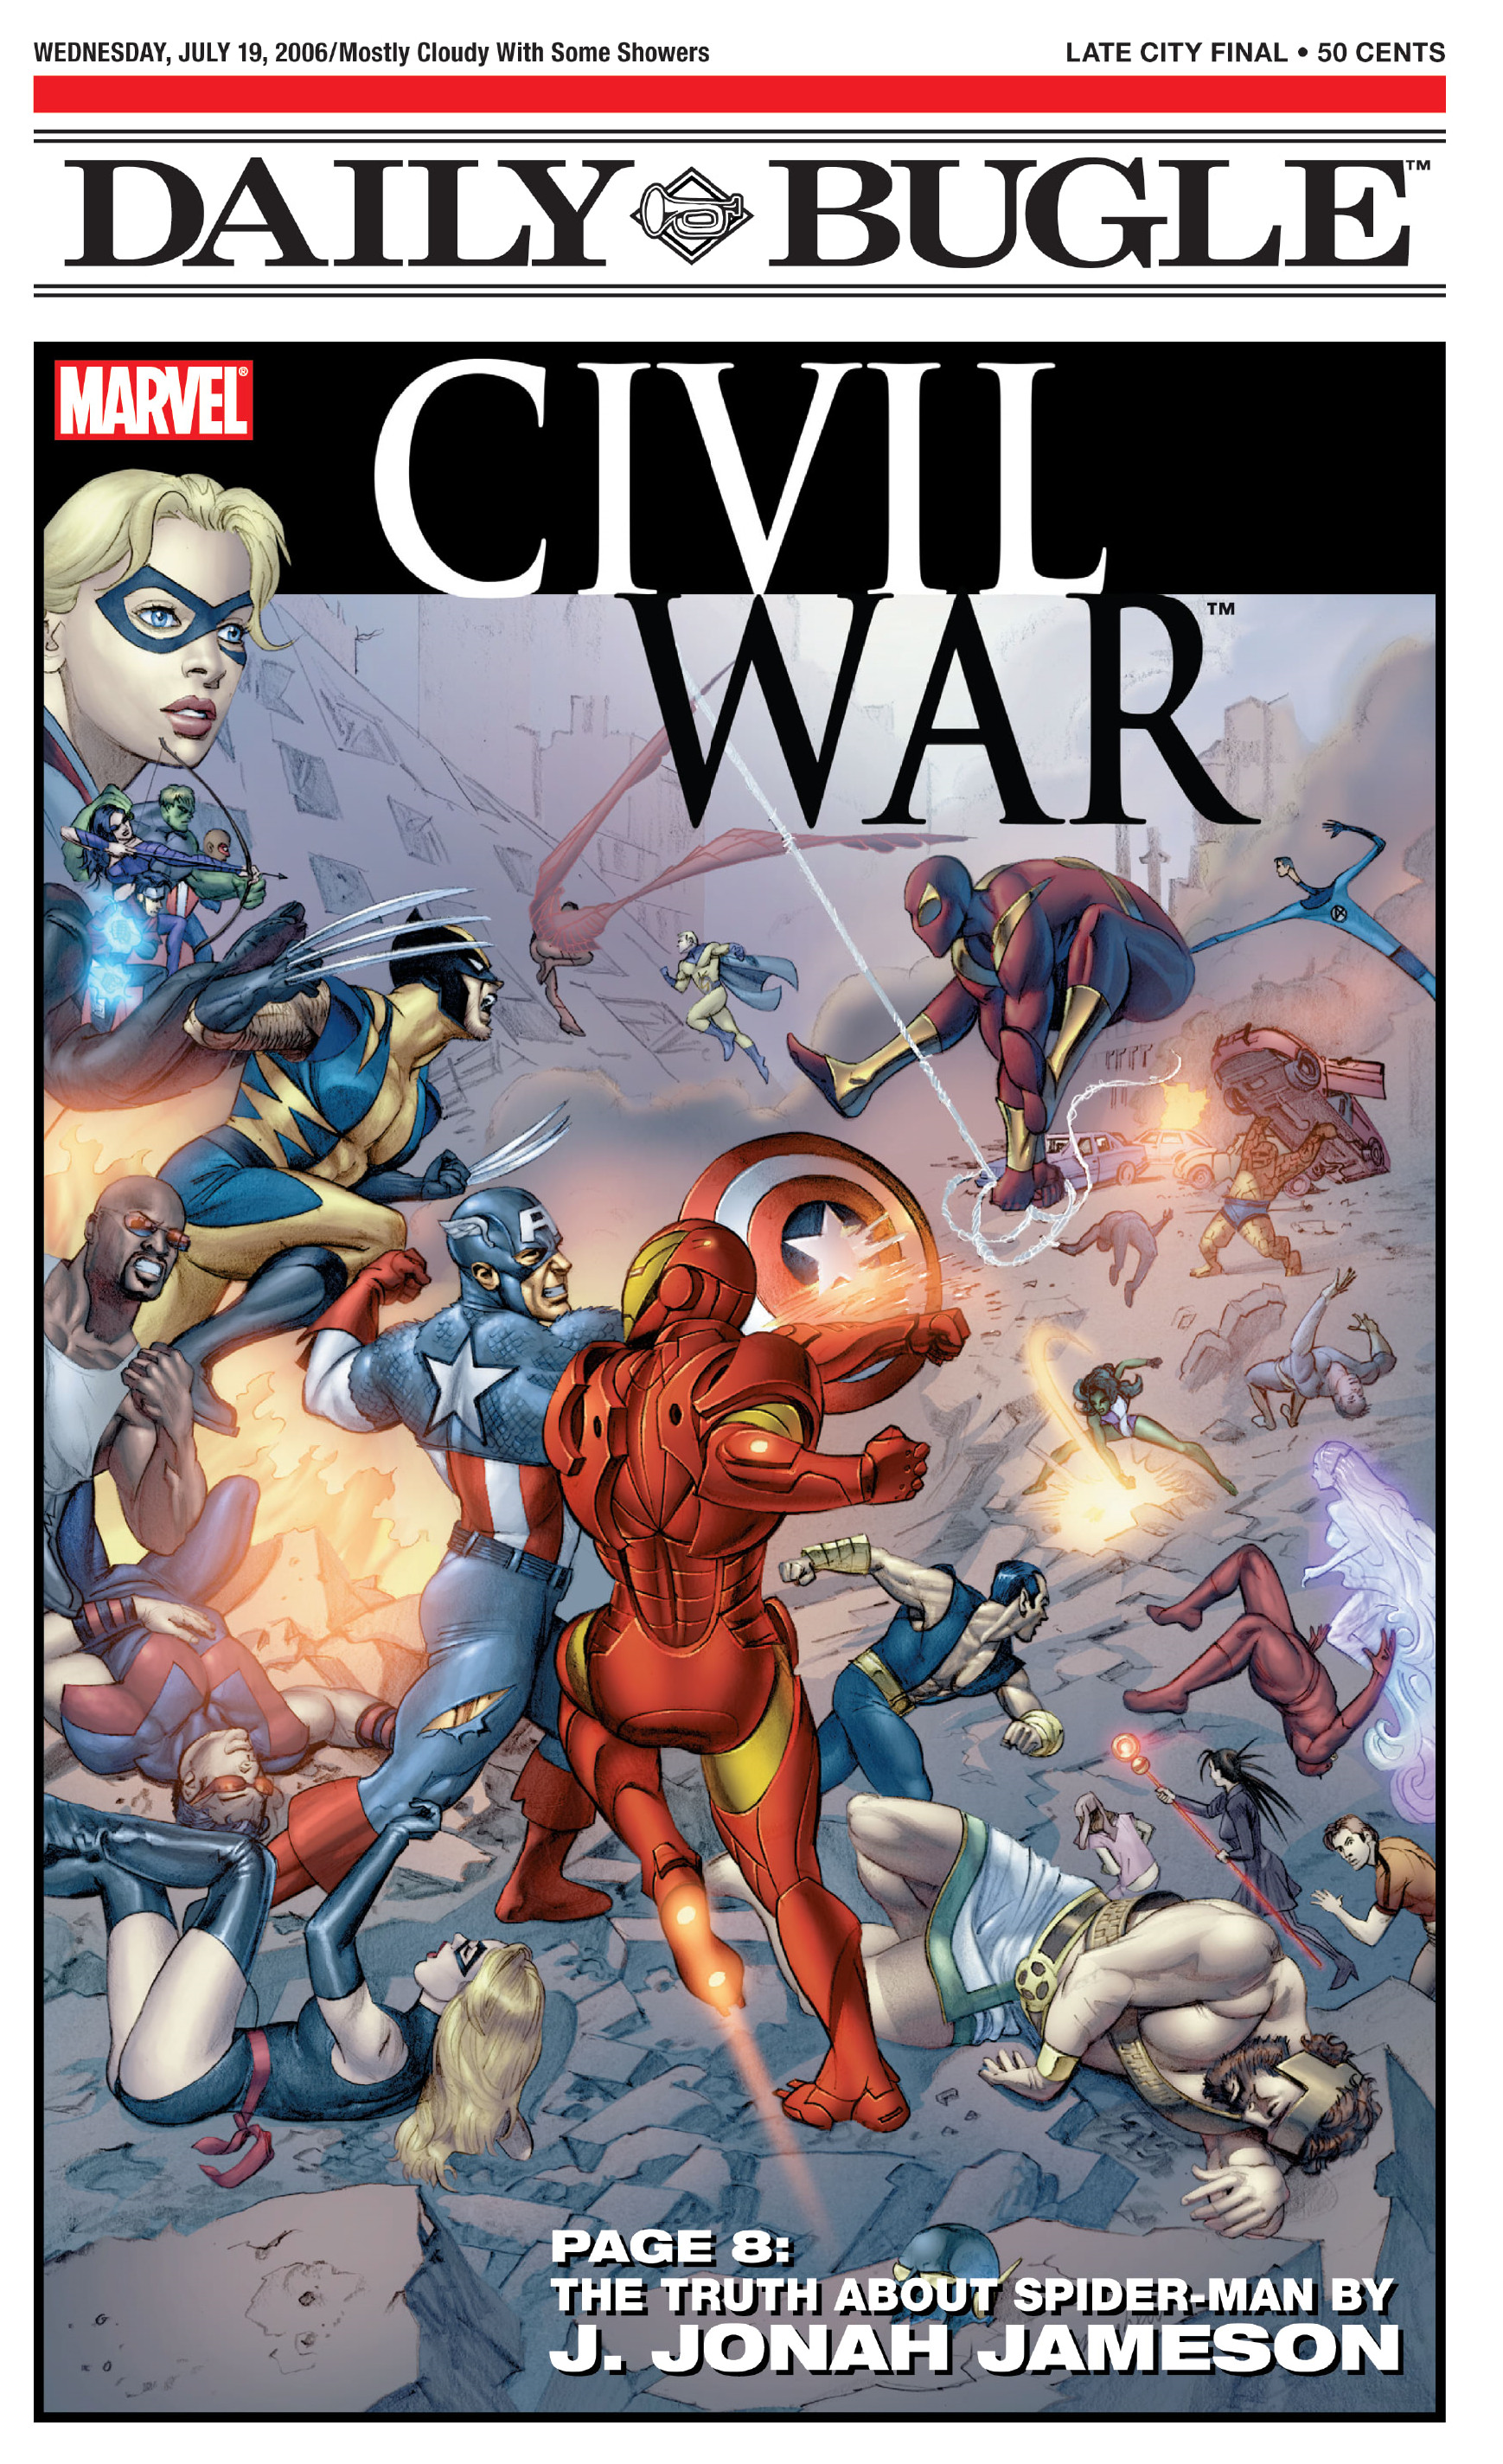 Daily Bugle Civil War Newspaper Special Vol 1 1